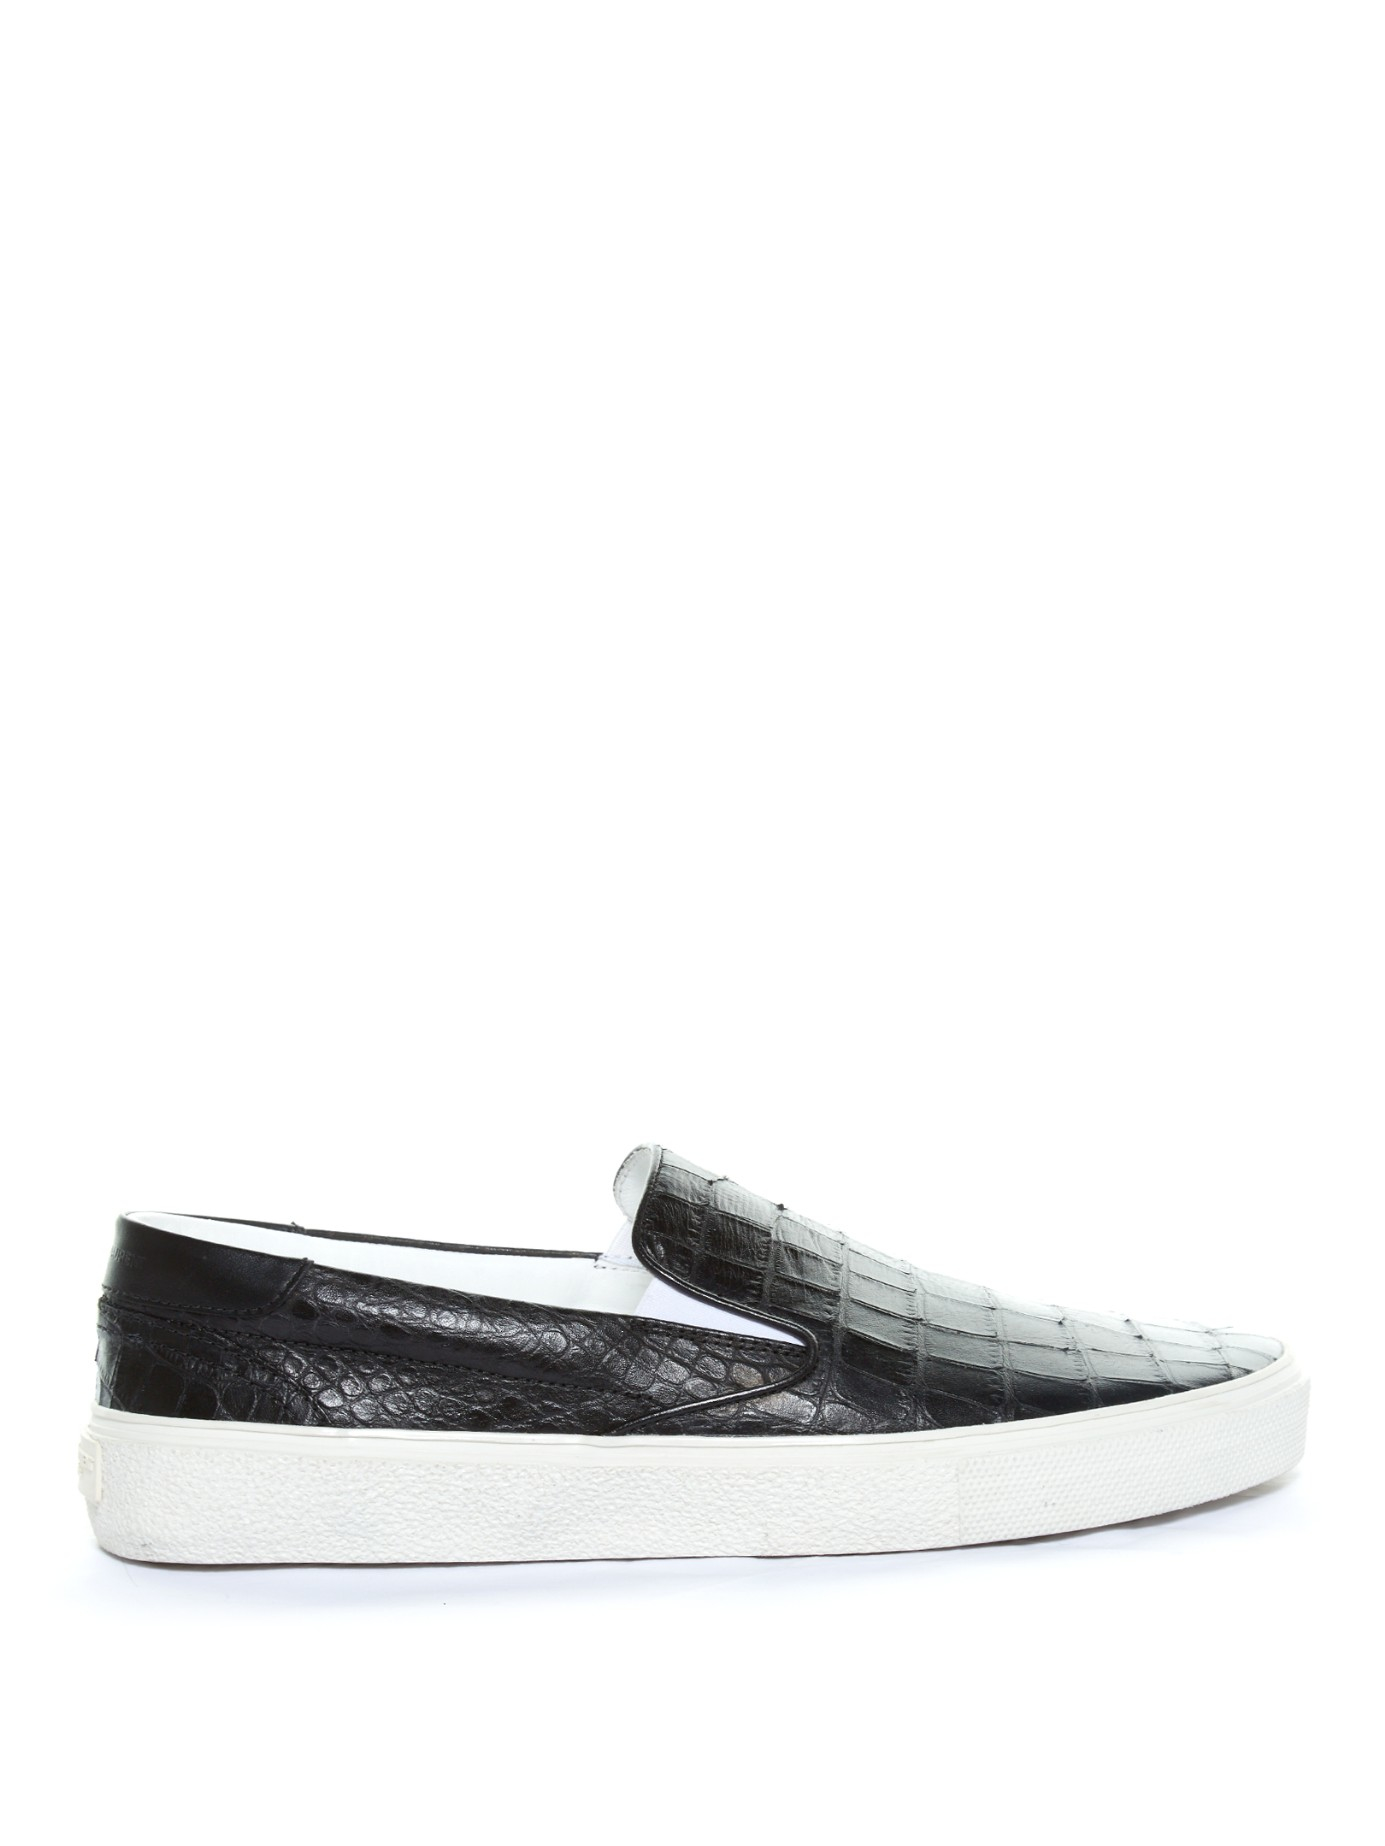 31c734d28ff3 Saint Laurent Crocodile-effect Leather Slip-in Trainers in Black for ...